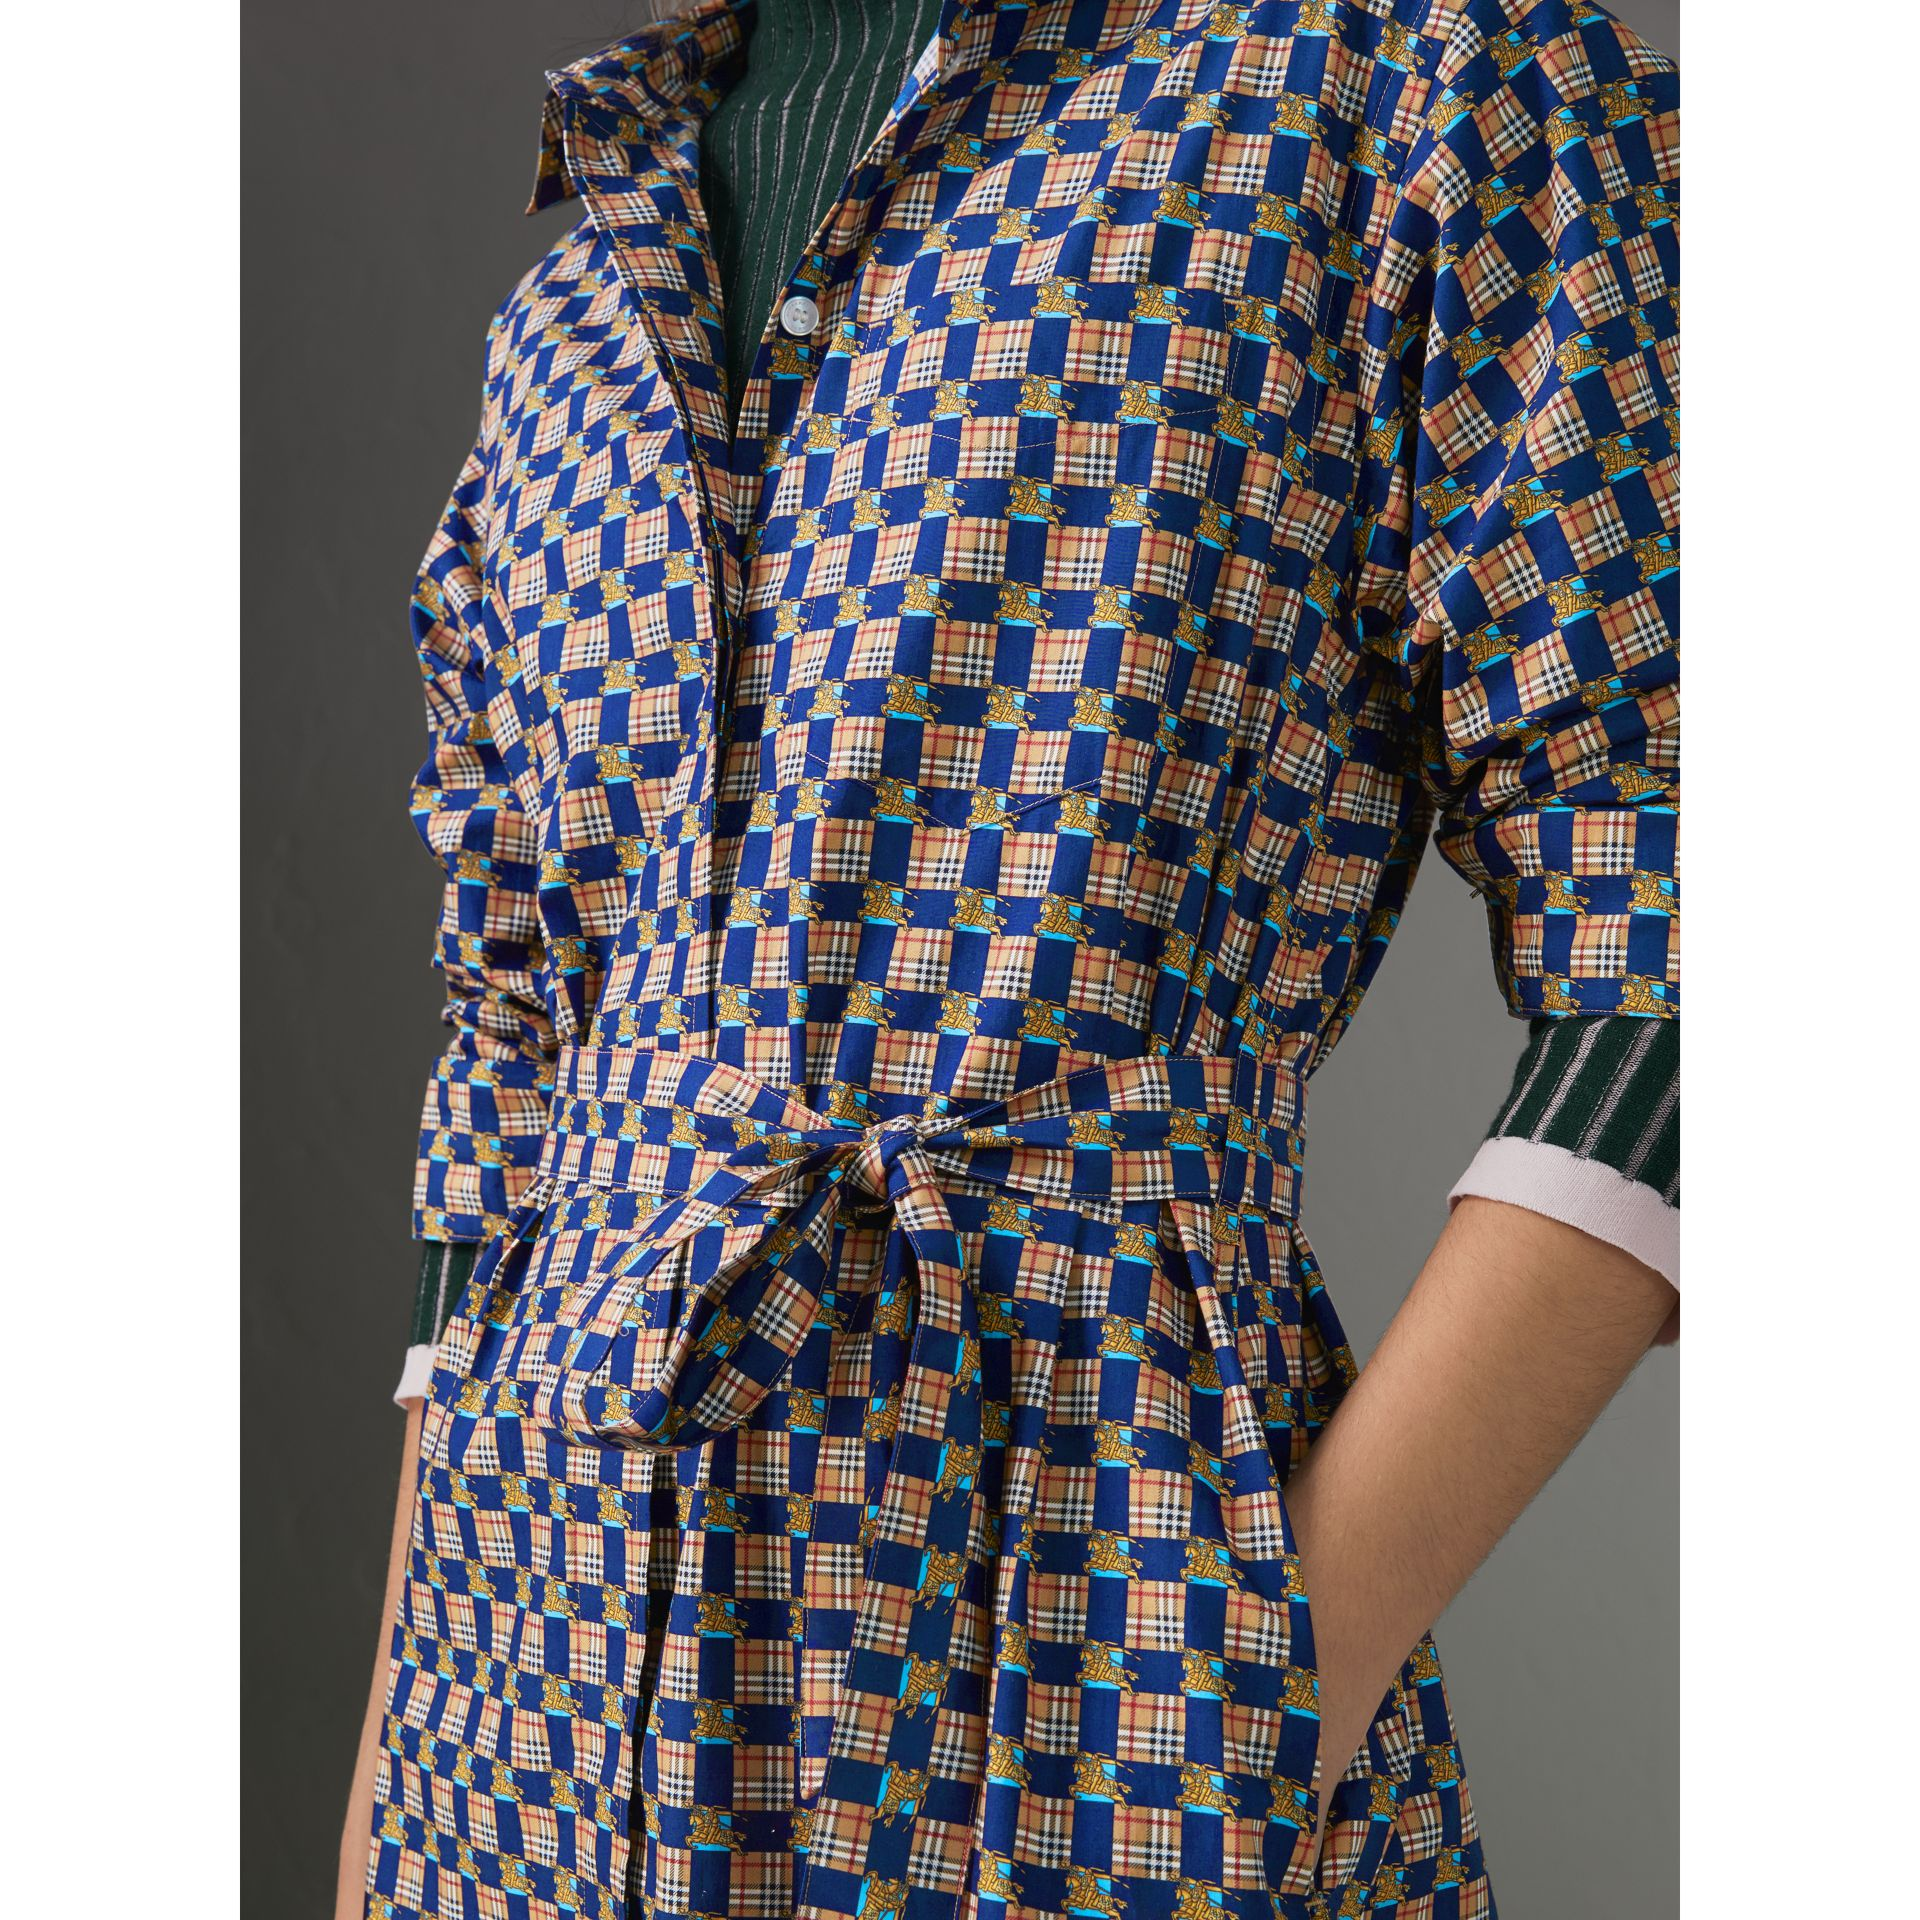 Tiled Archive Print Cotton Shirt Dress in Navy - Women | Burberry - gallery image 1